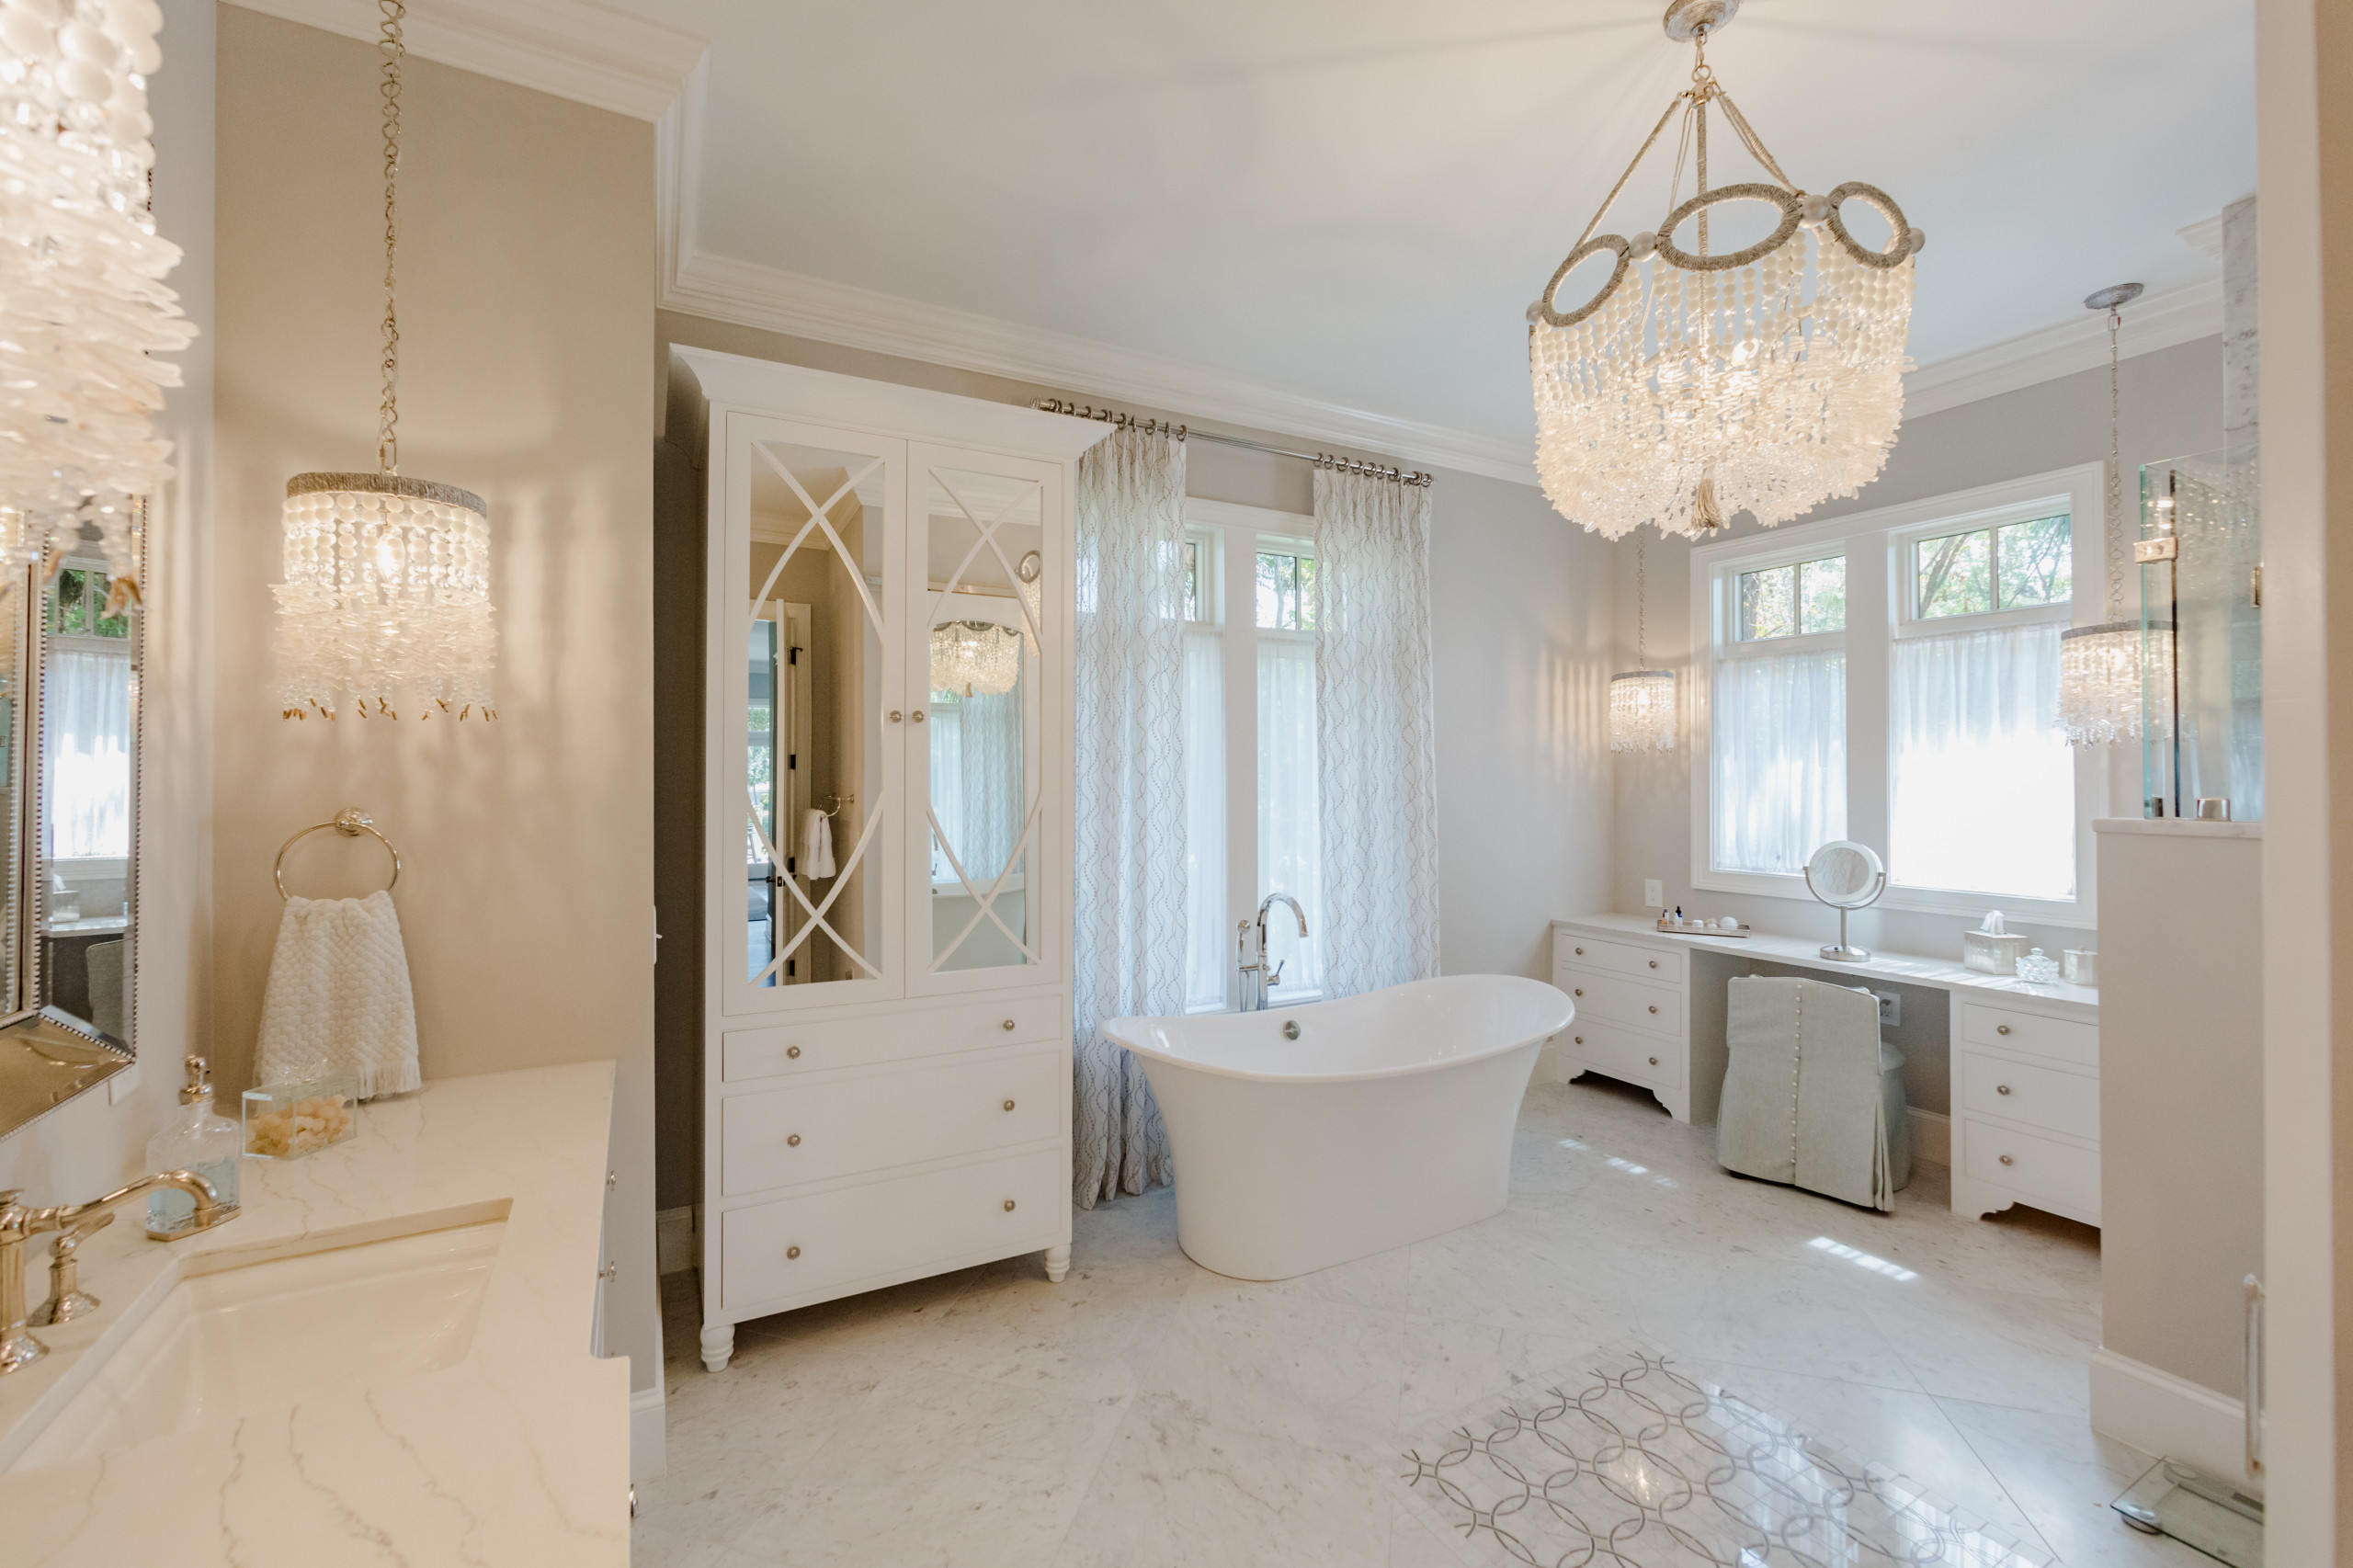 A sparkling Bathroom